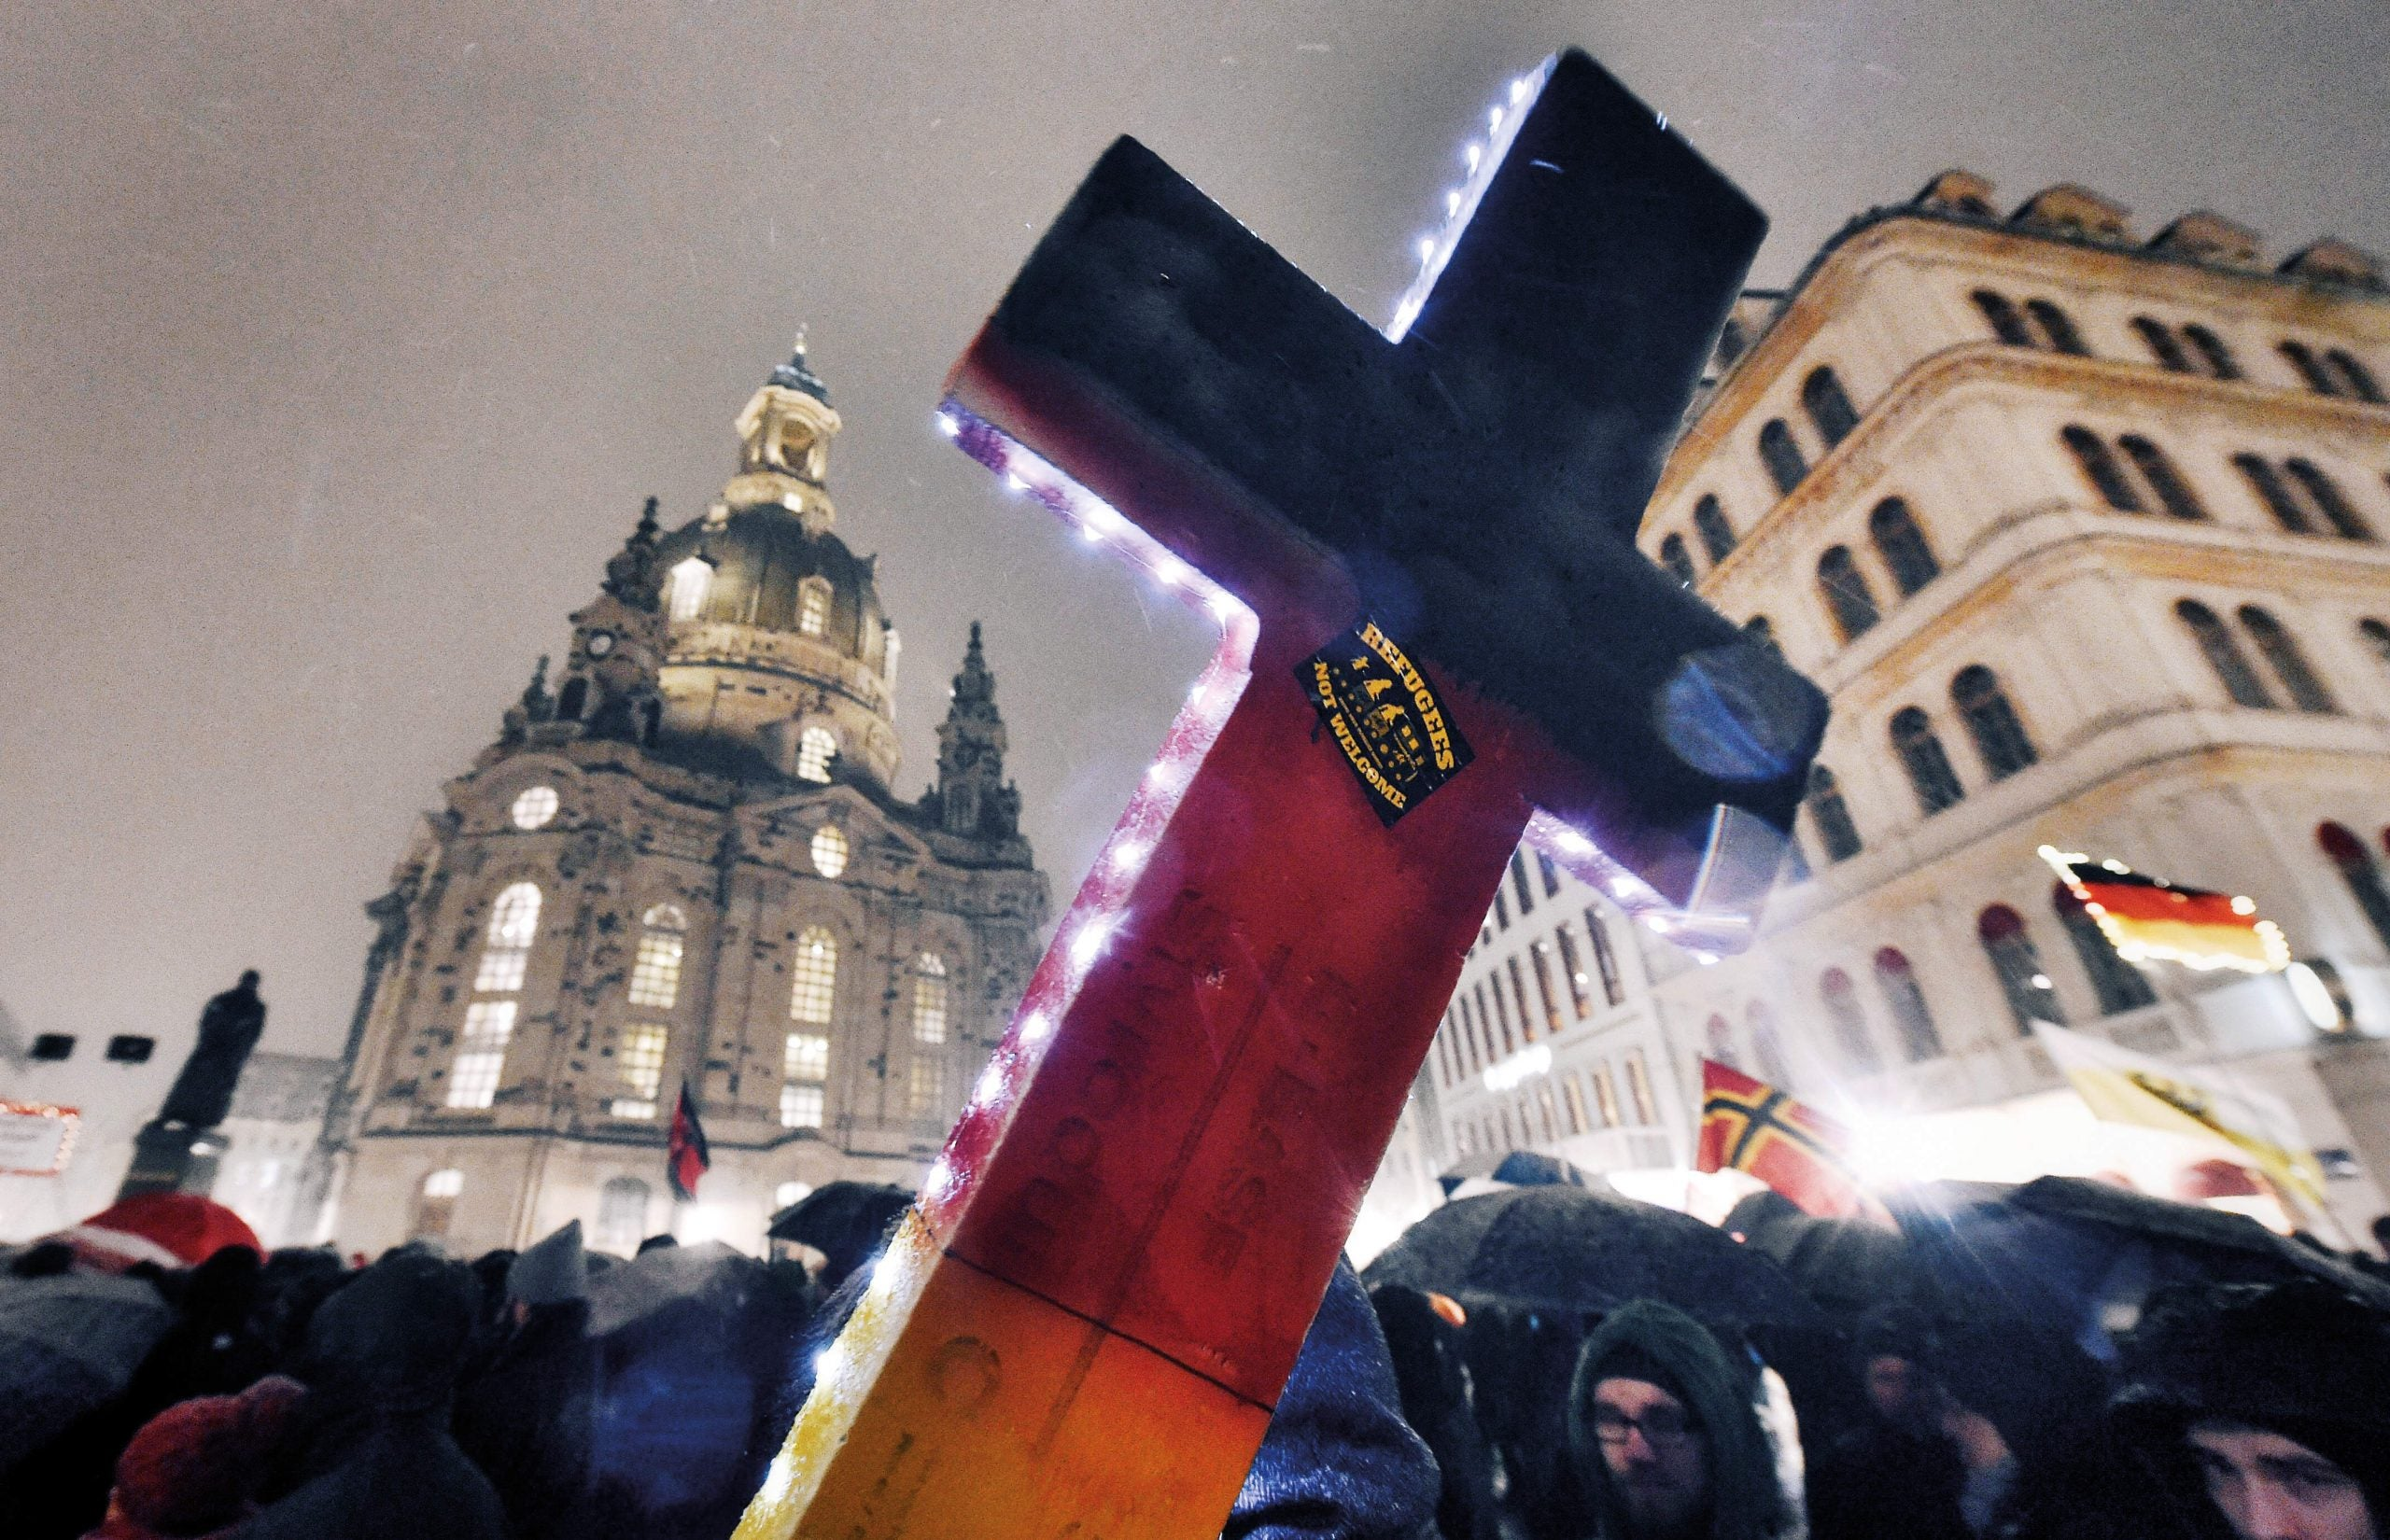 Defenders of the faith: why right-wing populists are embracing religion